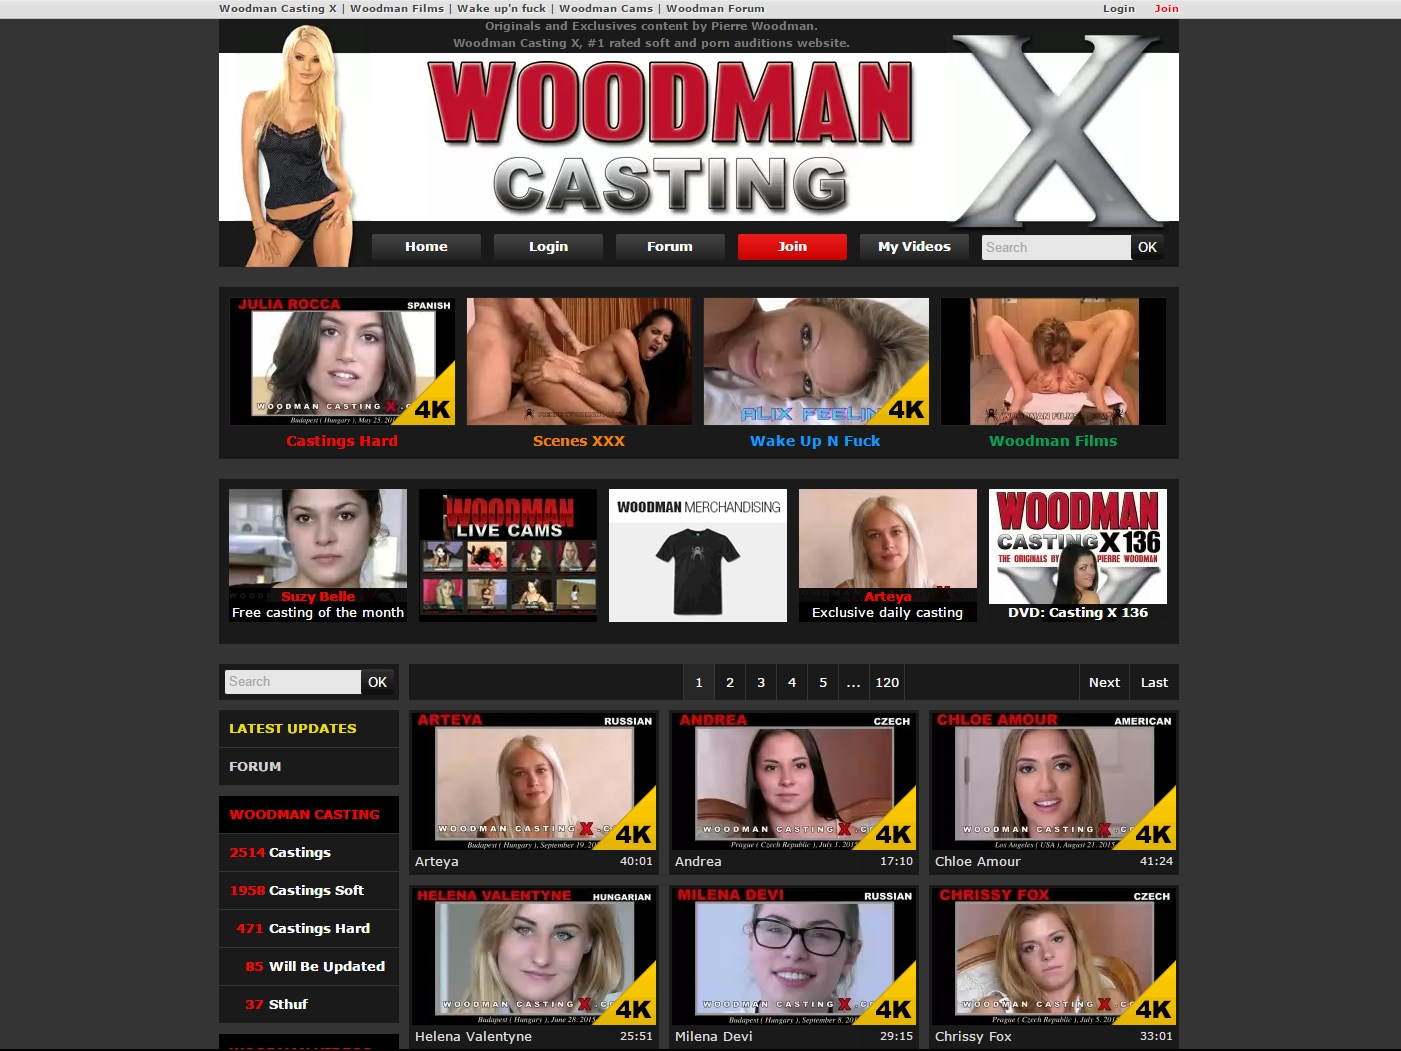 woodman casting x review | x3guide